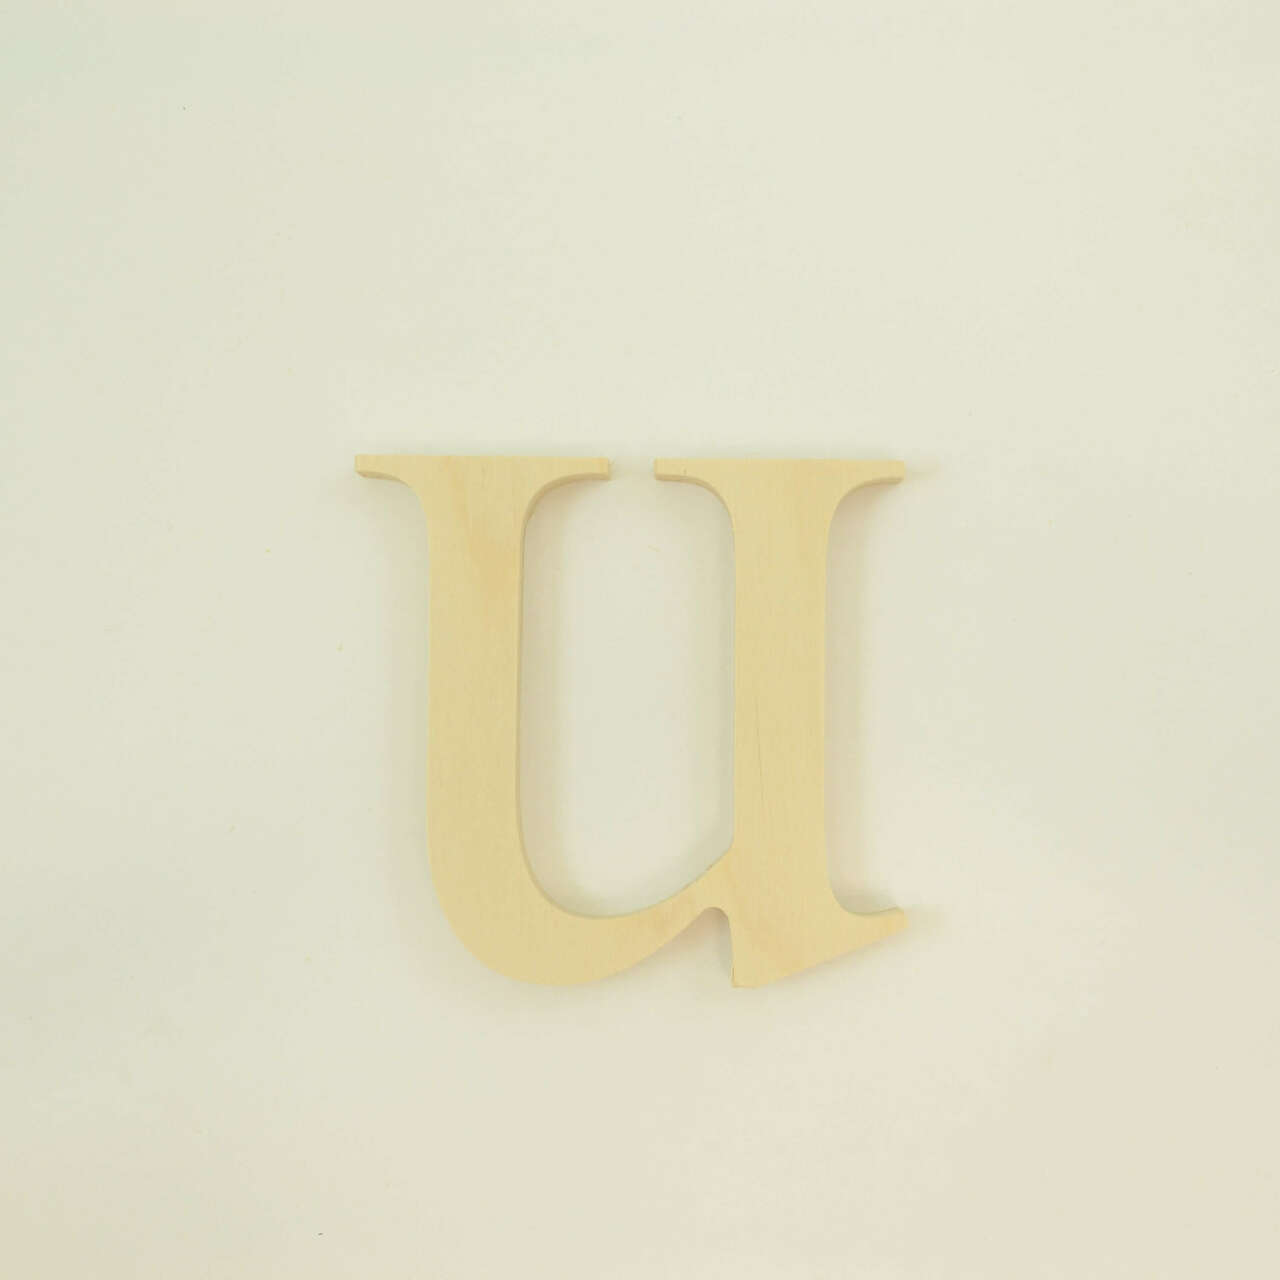 Single Wooden Letter Fonts DIY Crafting Decorative Craft Monogram Unfinished Birch Plywood 2-30 inches Home Decor Deliciously Sans